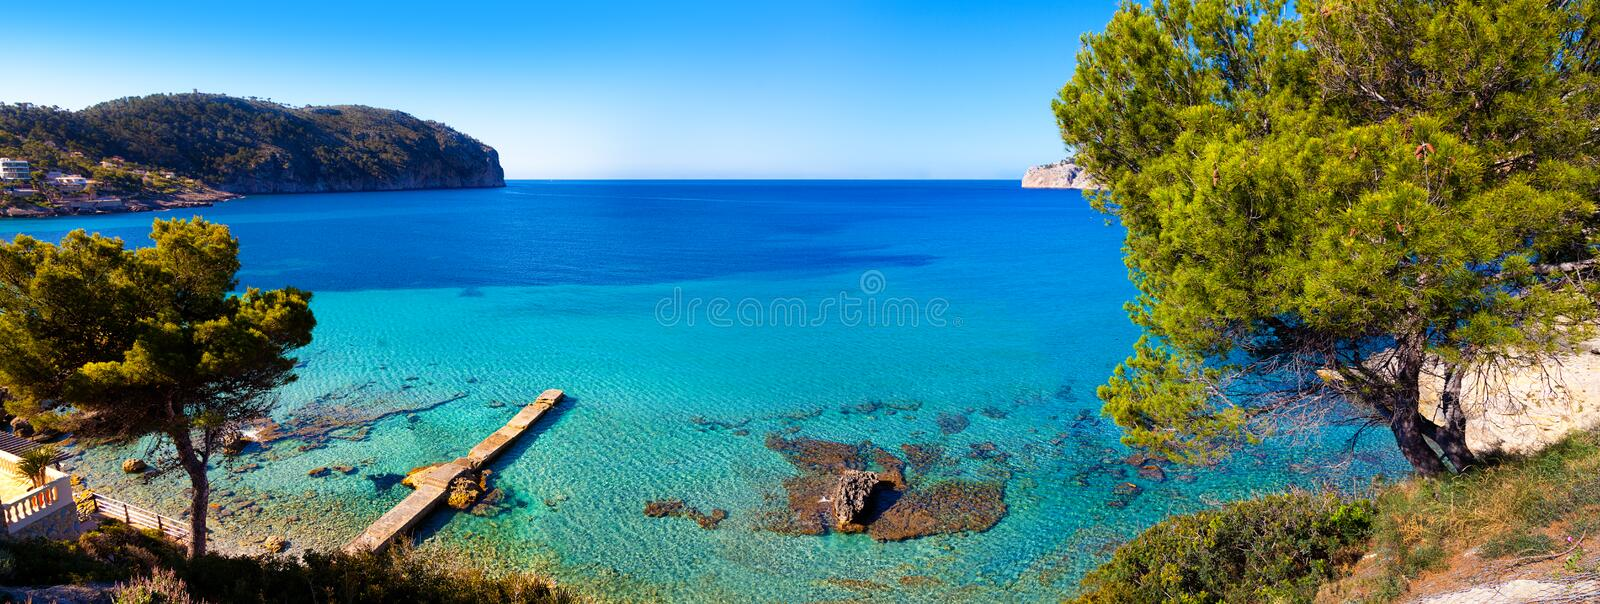 Idyllic Sea View in Mallorca stock images